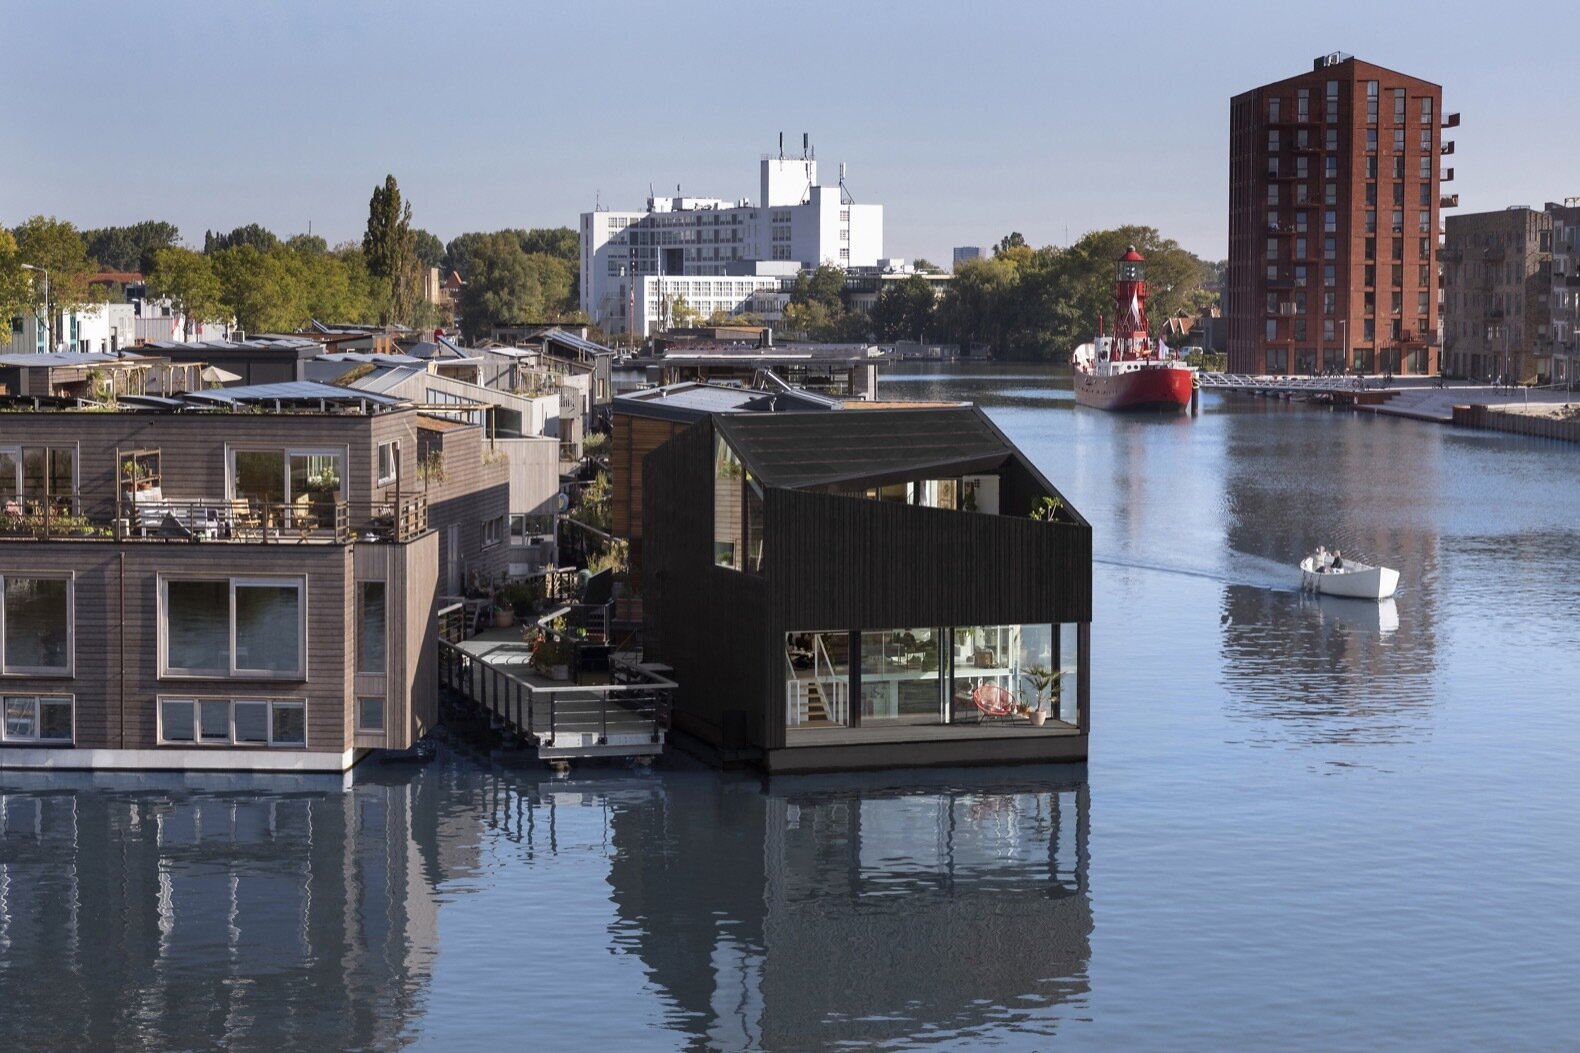 Schoonschip floating home exterior